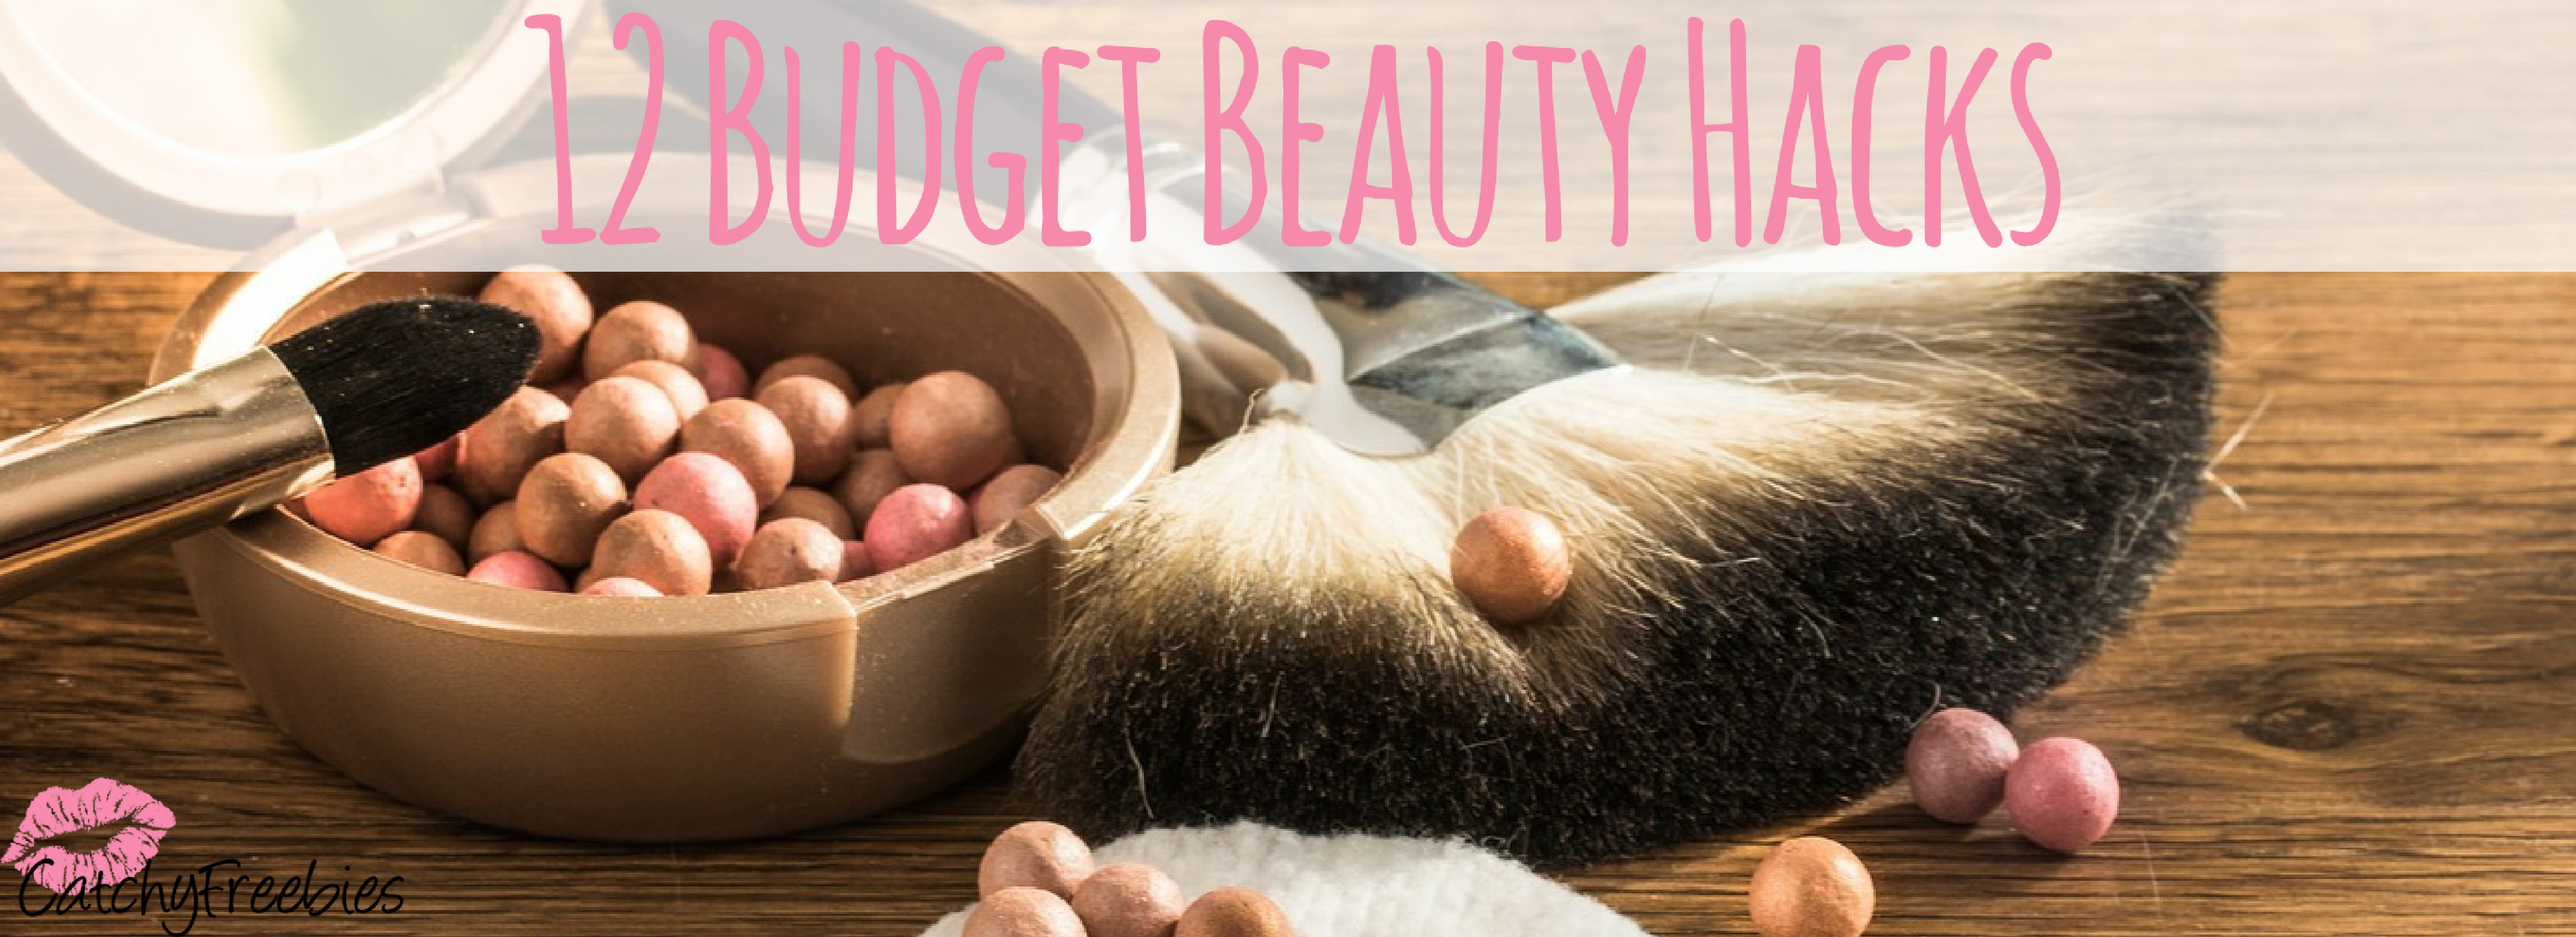 12 Budget Beauty Hacks